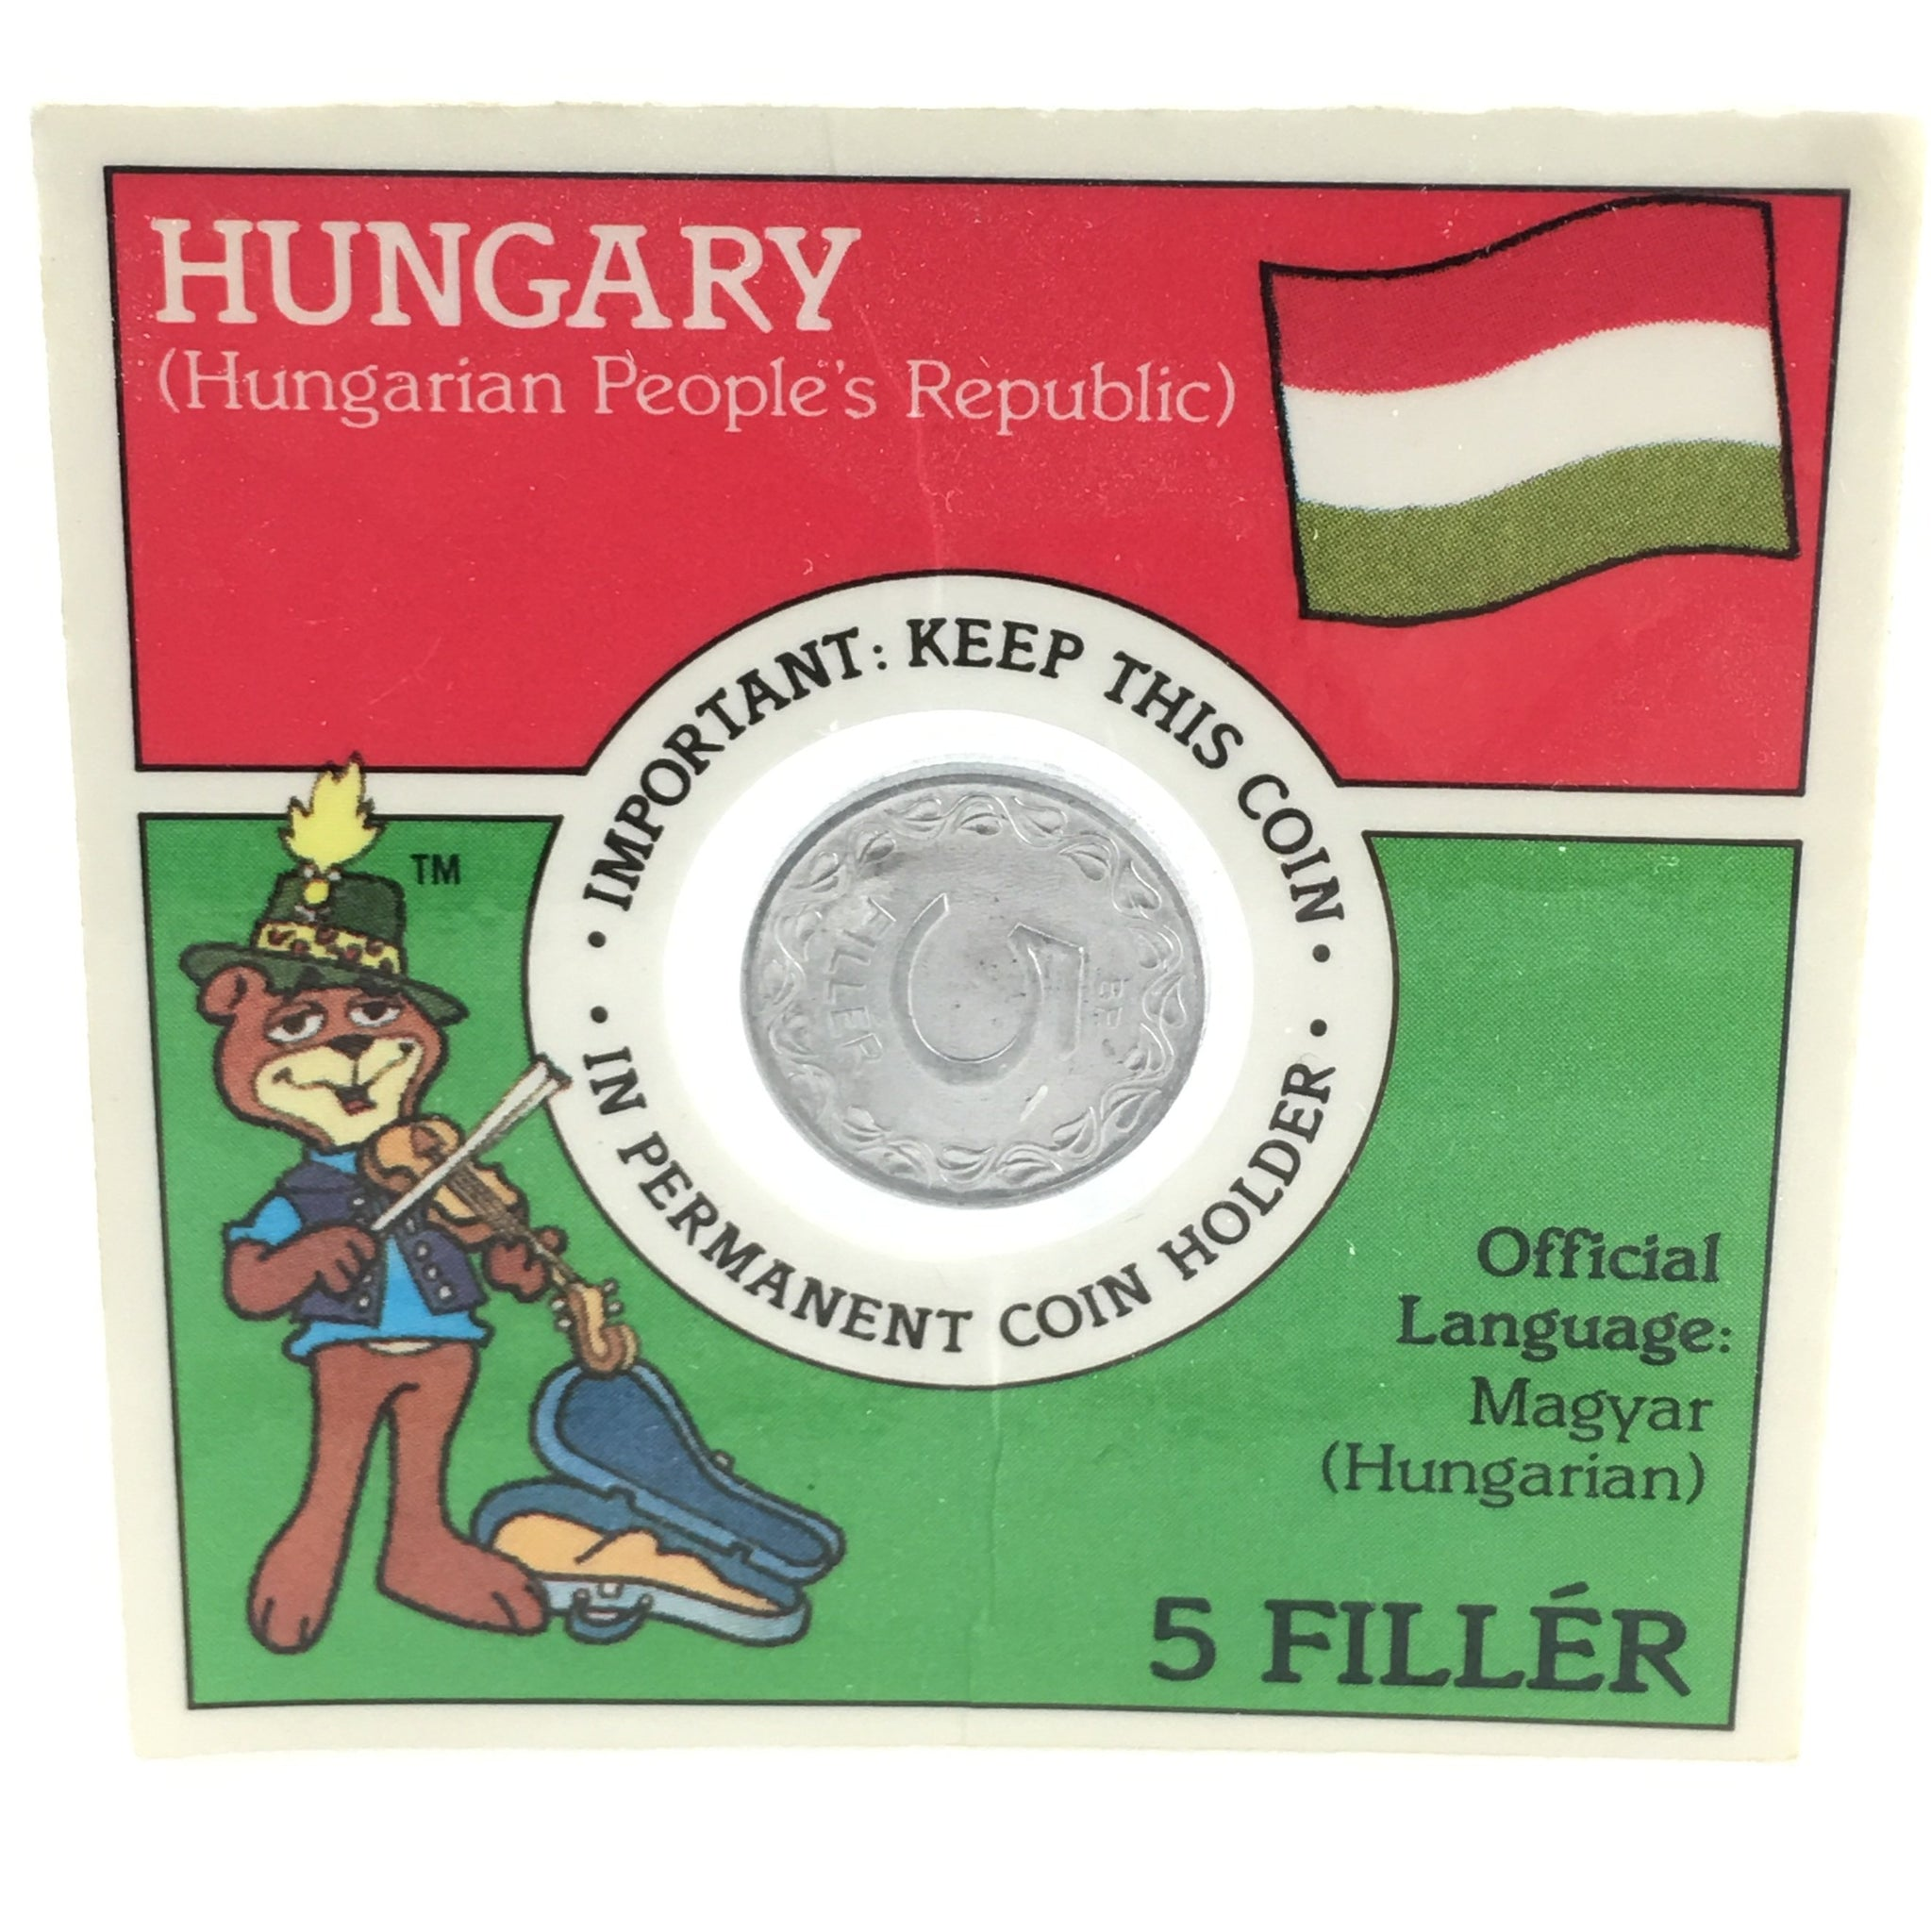 Hungary 5 Filler Coin - Kellogg Sugar Crisp - Error Coin (c.1970s)